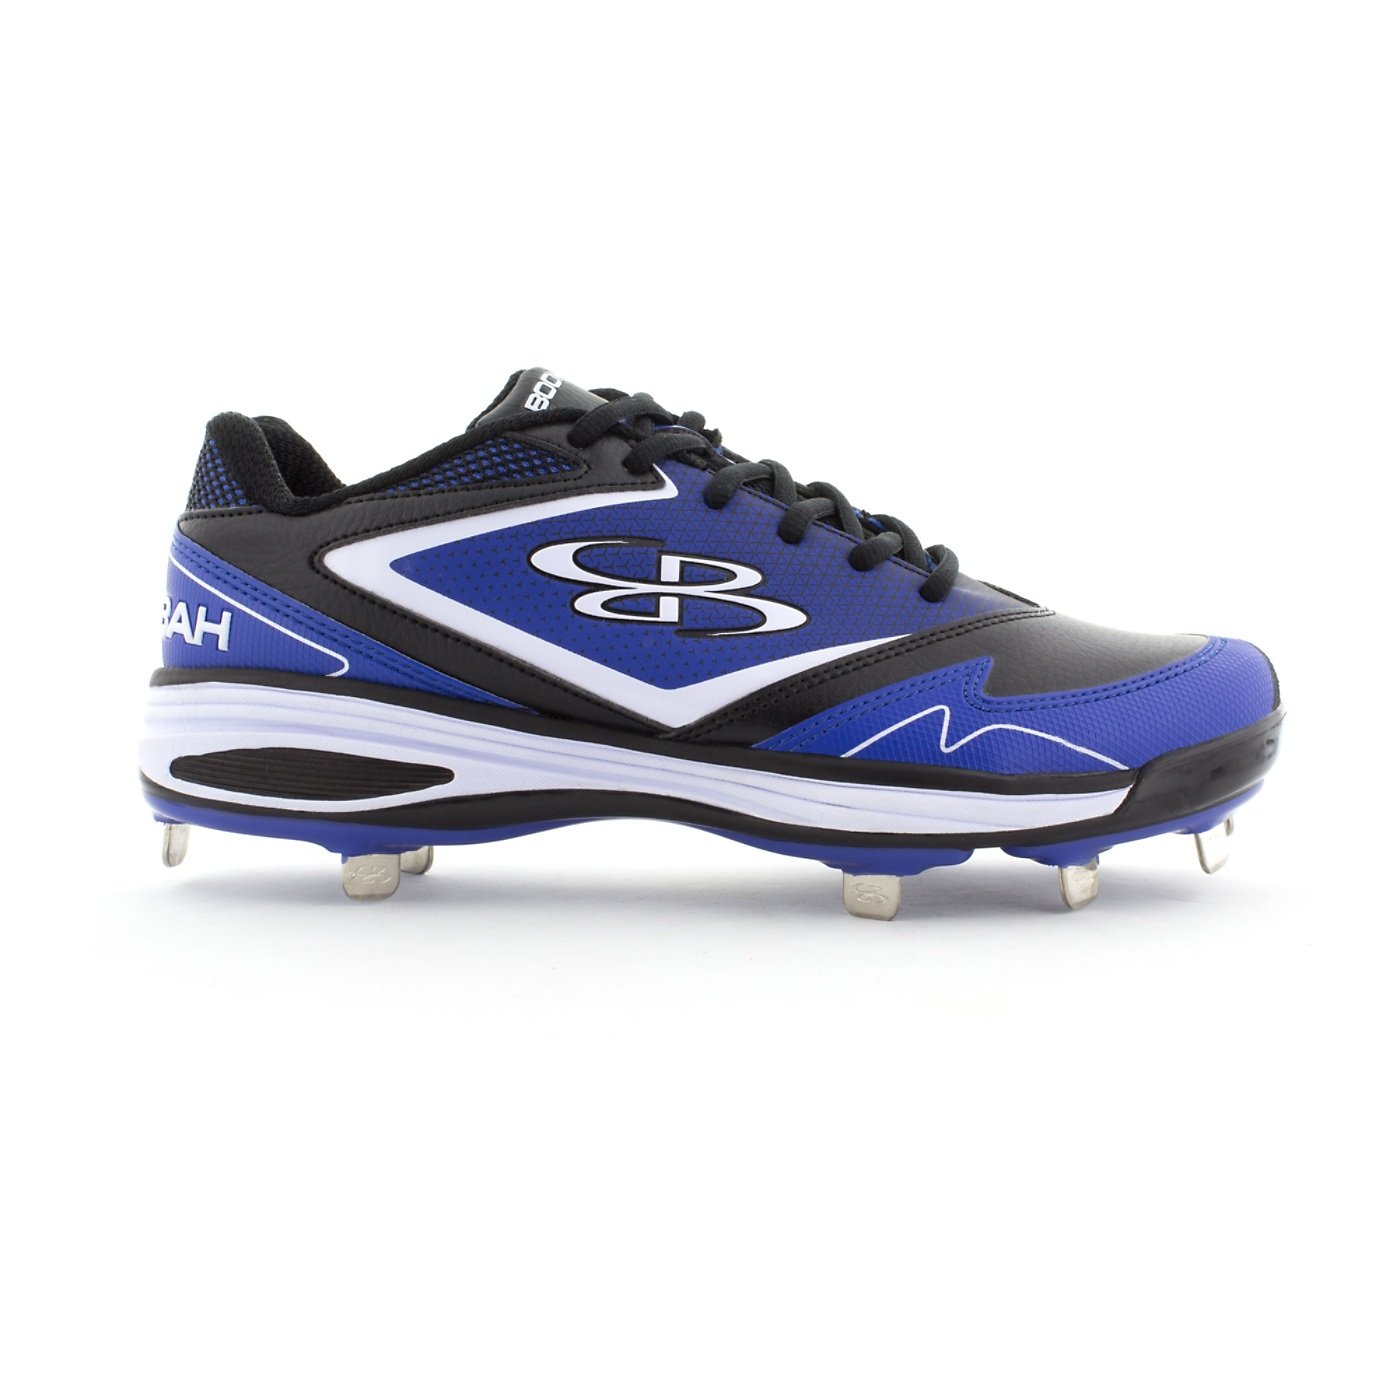 Boombah Women's A-Game Metal Cleat Black/Royal Blue - Size 10